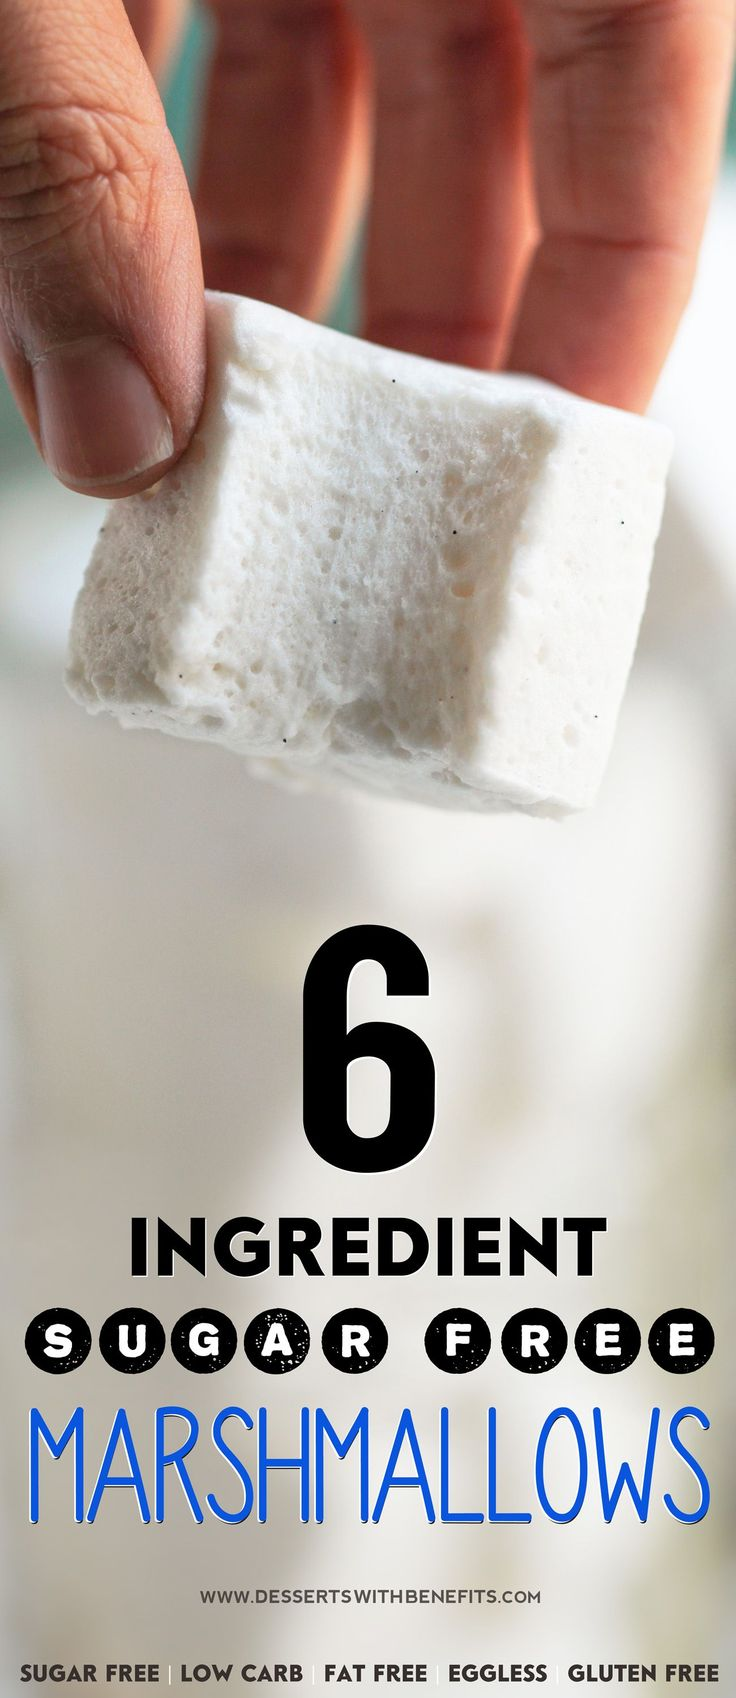 6-ingredient Healthy Homemade Sugar-Free Marshmallows (they're SUPER fun to make too)! You'd never know that these fluffy, sweet marshmallows are all natural, sugar free, low carb, fat free, eggless, and gluten free!